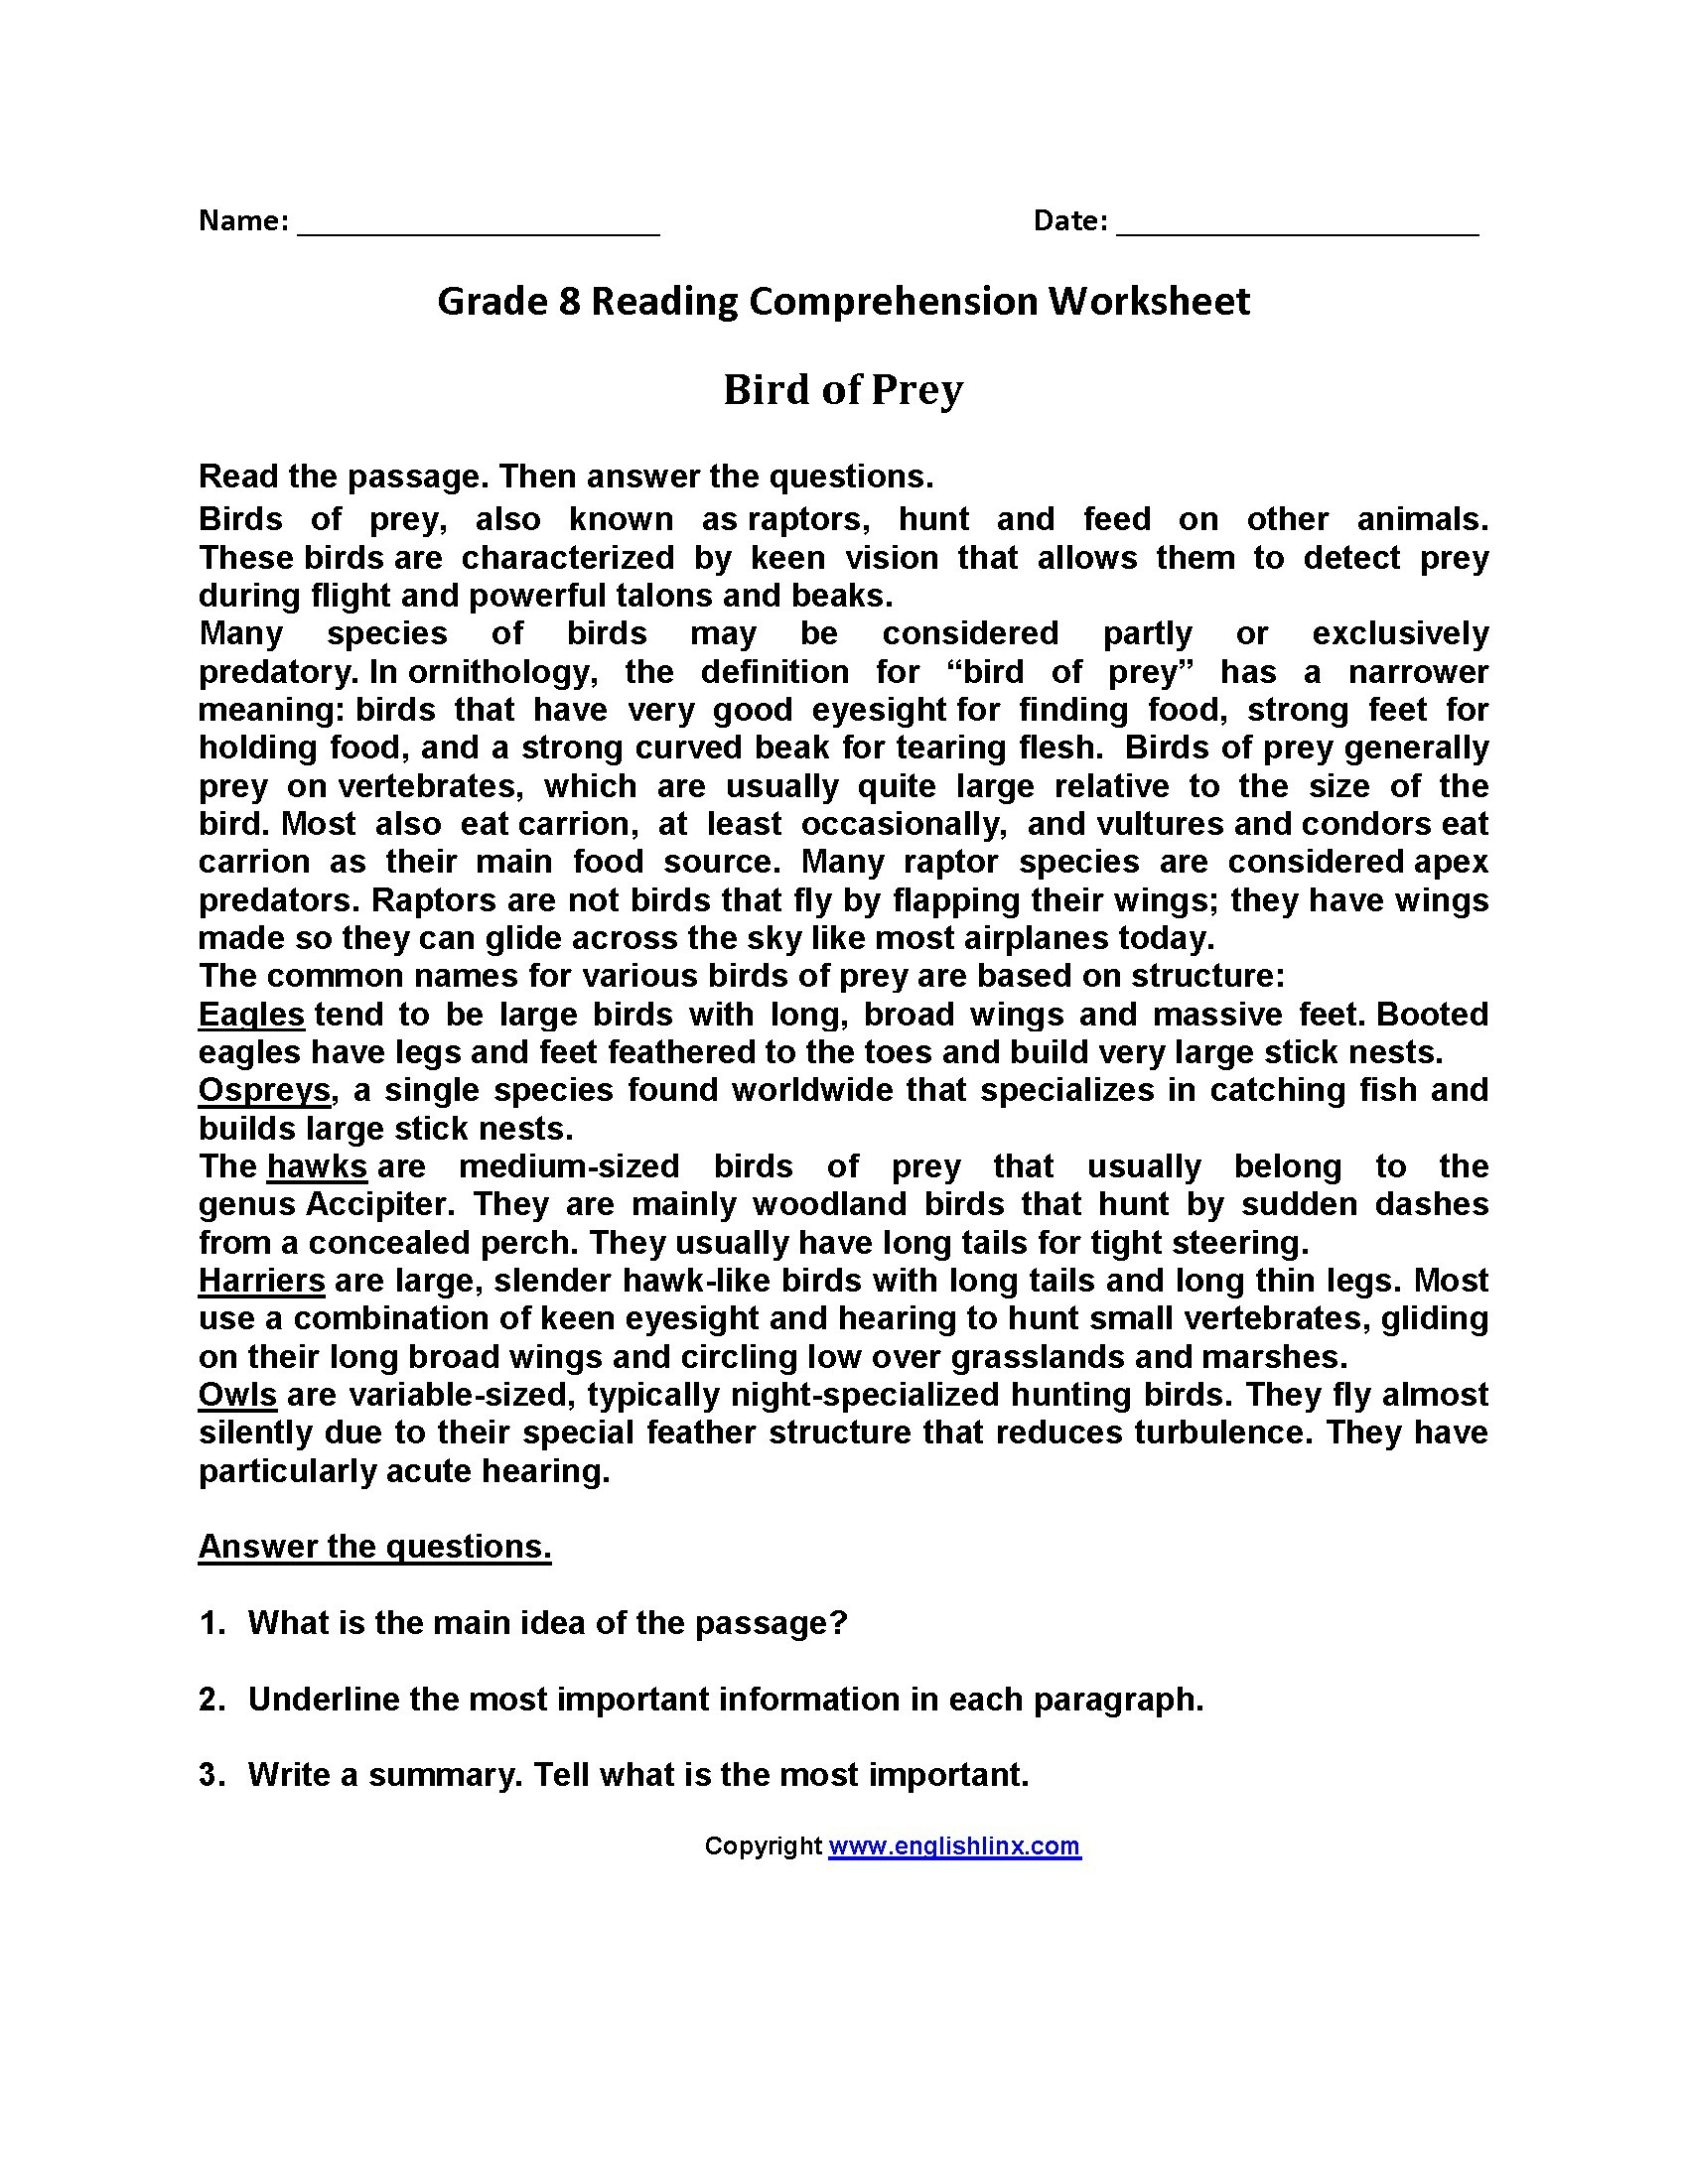 Free Printable Reading Comprehension Worksheets 3Rd Grade For - Free Printable Reading Passages For 3Rd Grade